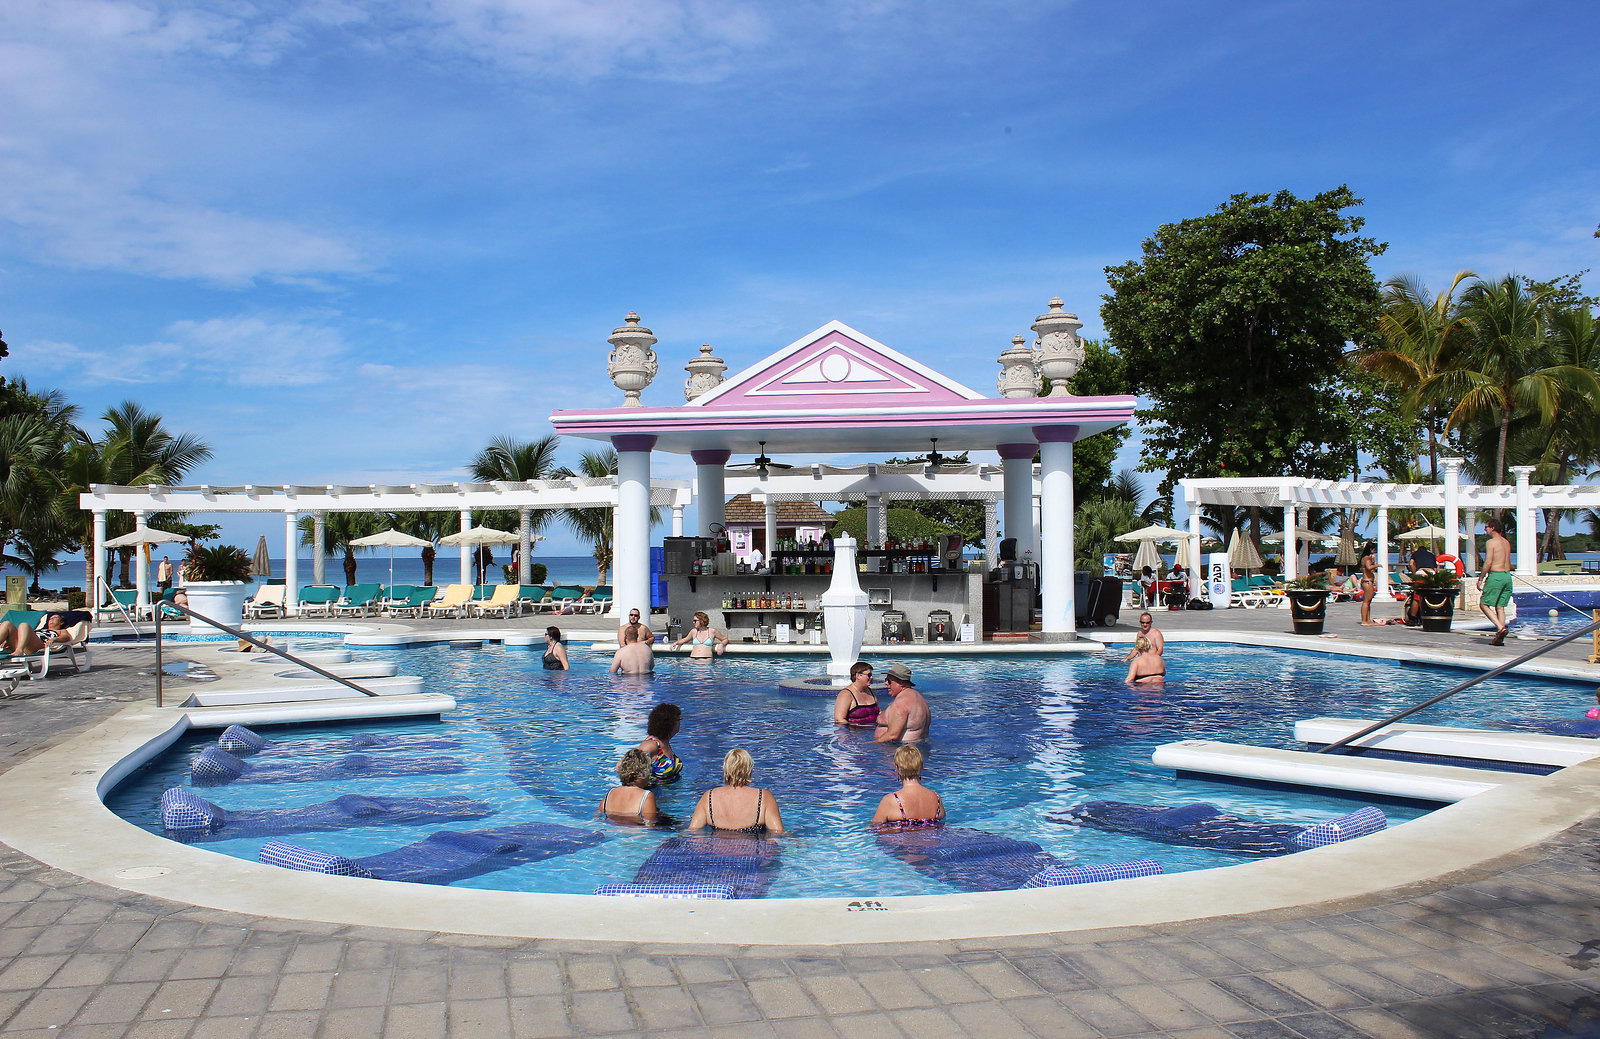 Hotel Riu Palace Tropical Bay Negril Jamaica: Swimming pools and swim up bar